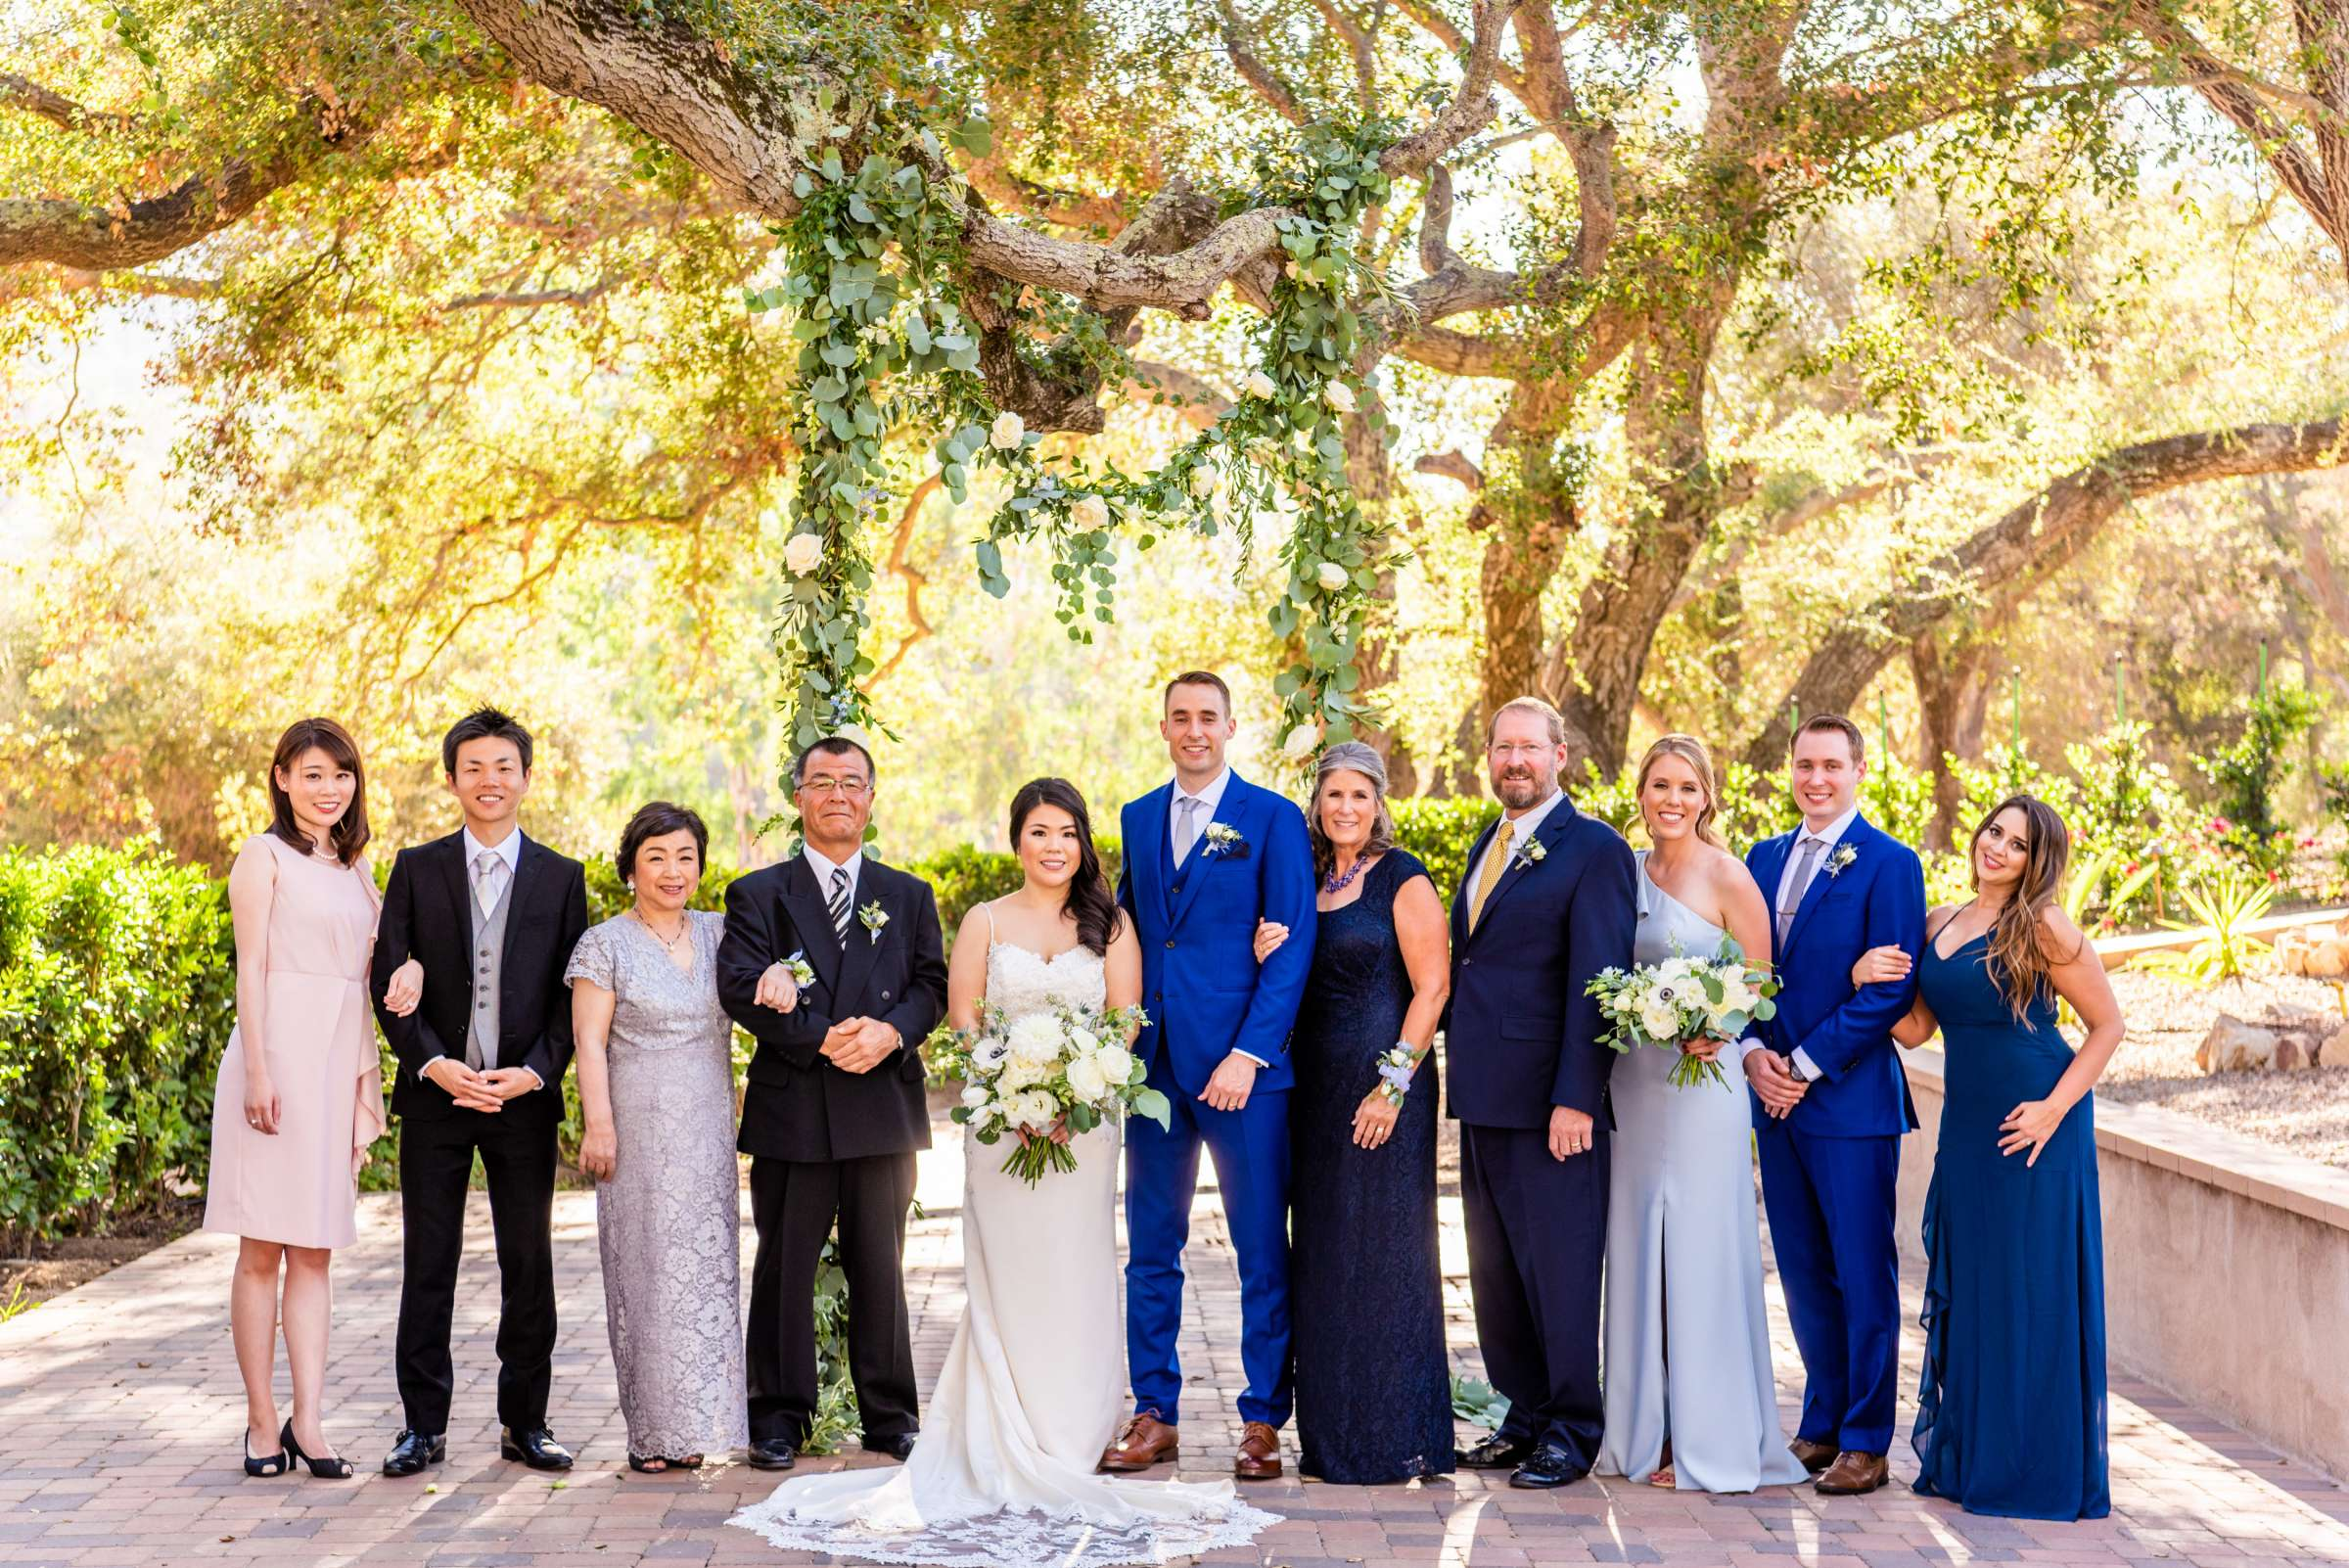 Mt Woodson Castle Wedding coordinated by I Do Weddings, Aya and Jared Wedding Photo #486952 by True Photography